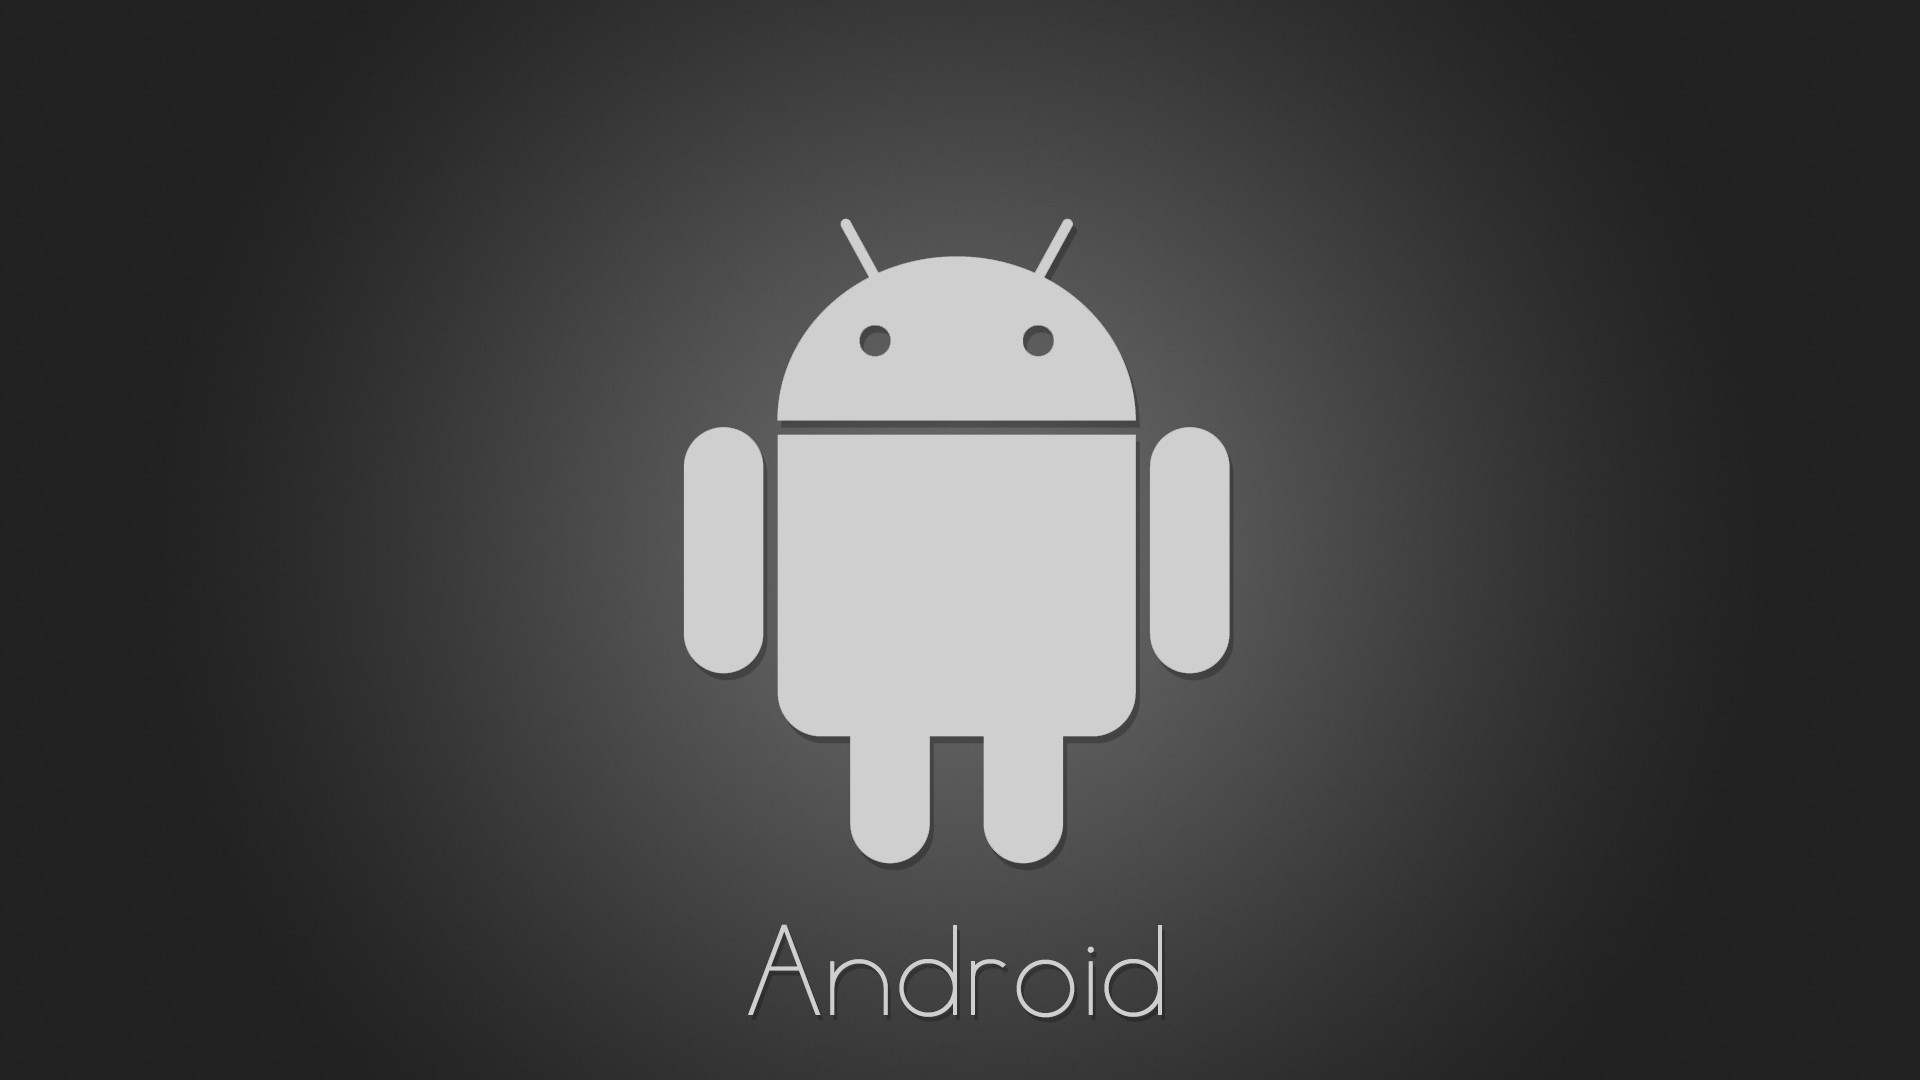 Minimalistic android logos wallpaper for Wallpaper home screen android